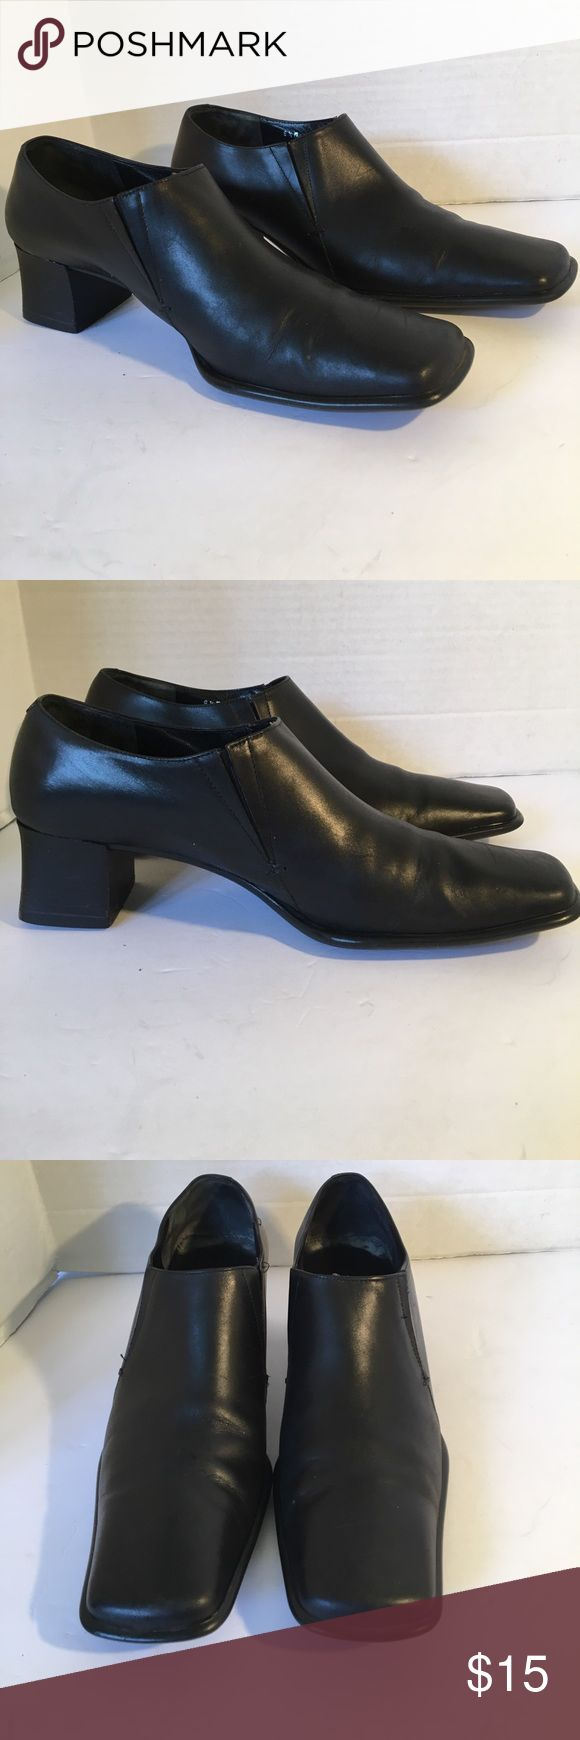 """Stunning Joan & David Leather Shoes Stunning leather shoes made in Italy . Slip on with slit sides to expand. In great condition! Soles great condition. Square toes. 2"""" heels. IF YOU PURCHASE MORE THEN 2 ITEM, YOU CAN ONLY BUNDLE UP TO 3 ITEMS PER ORDER OR IT WILL BE CANCELED Joan & David Shoes Ankle Boots & Booties"""